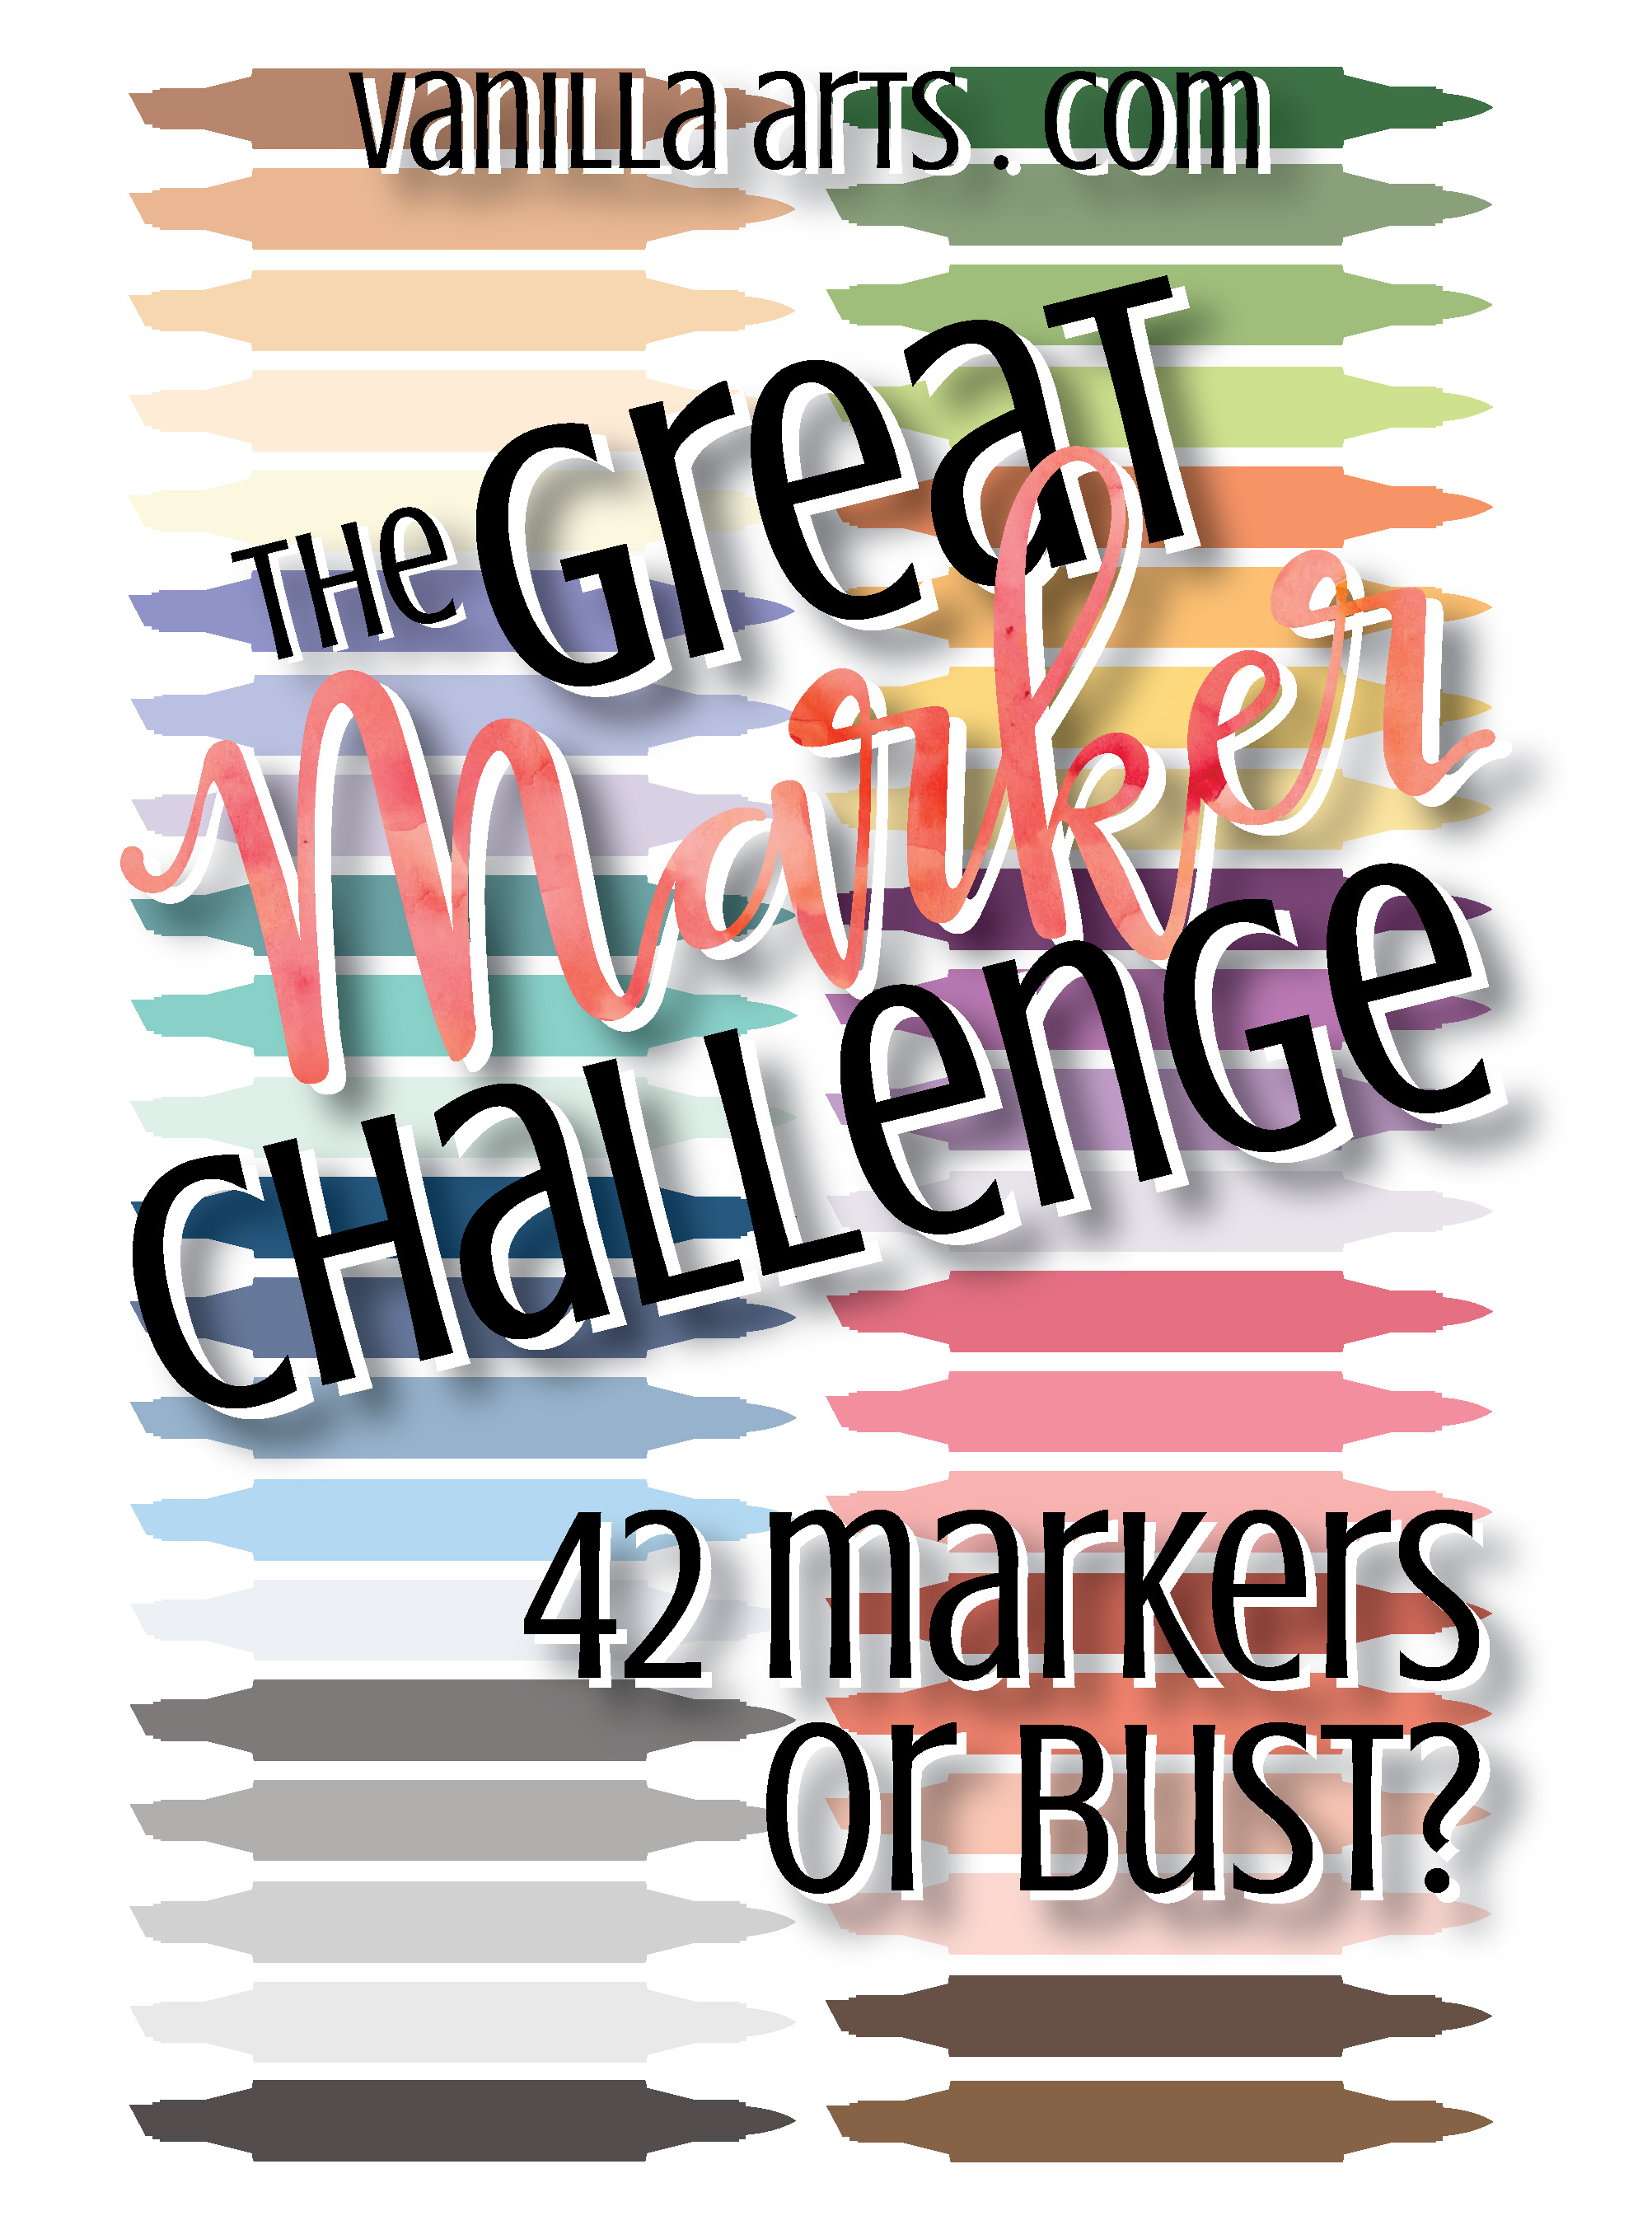 Take the Great Marker Challenge! 42? | VanillaArts.com